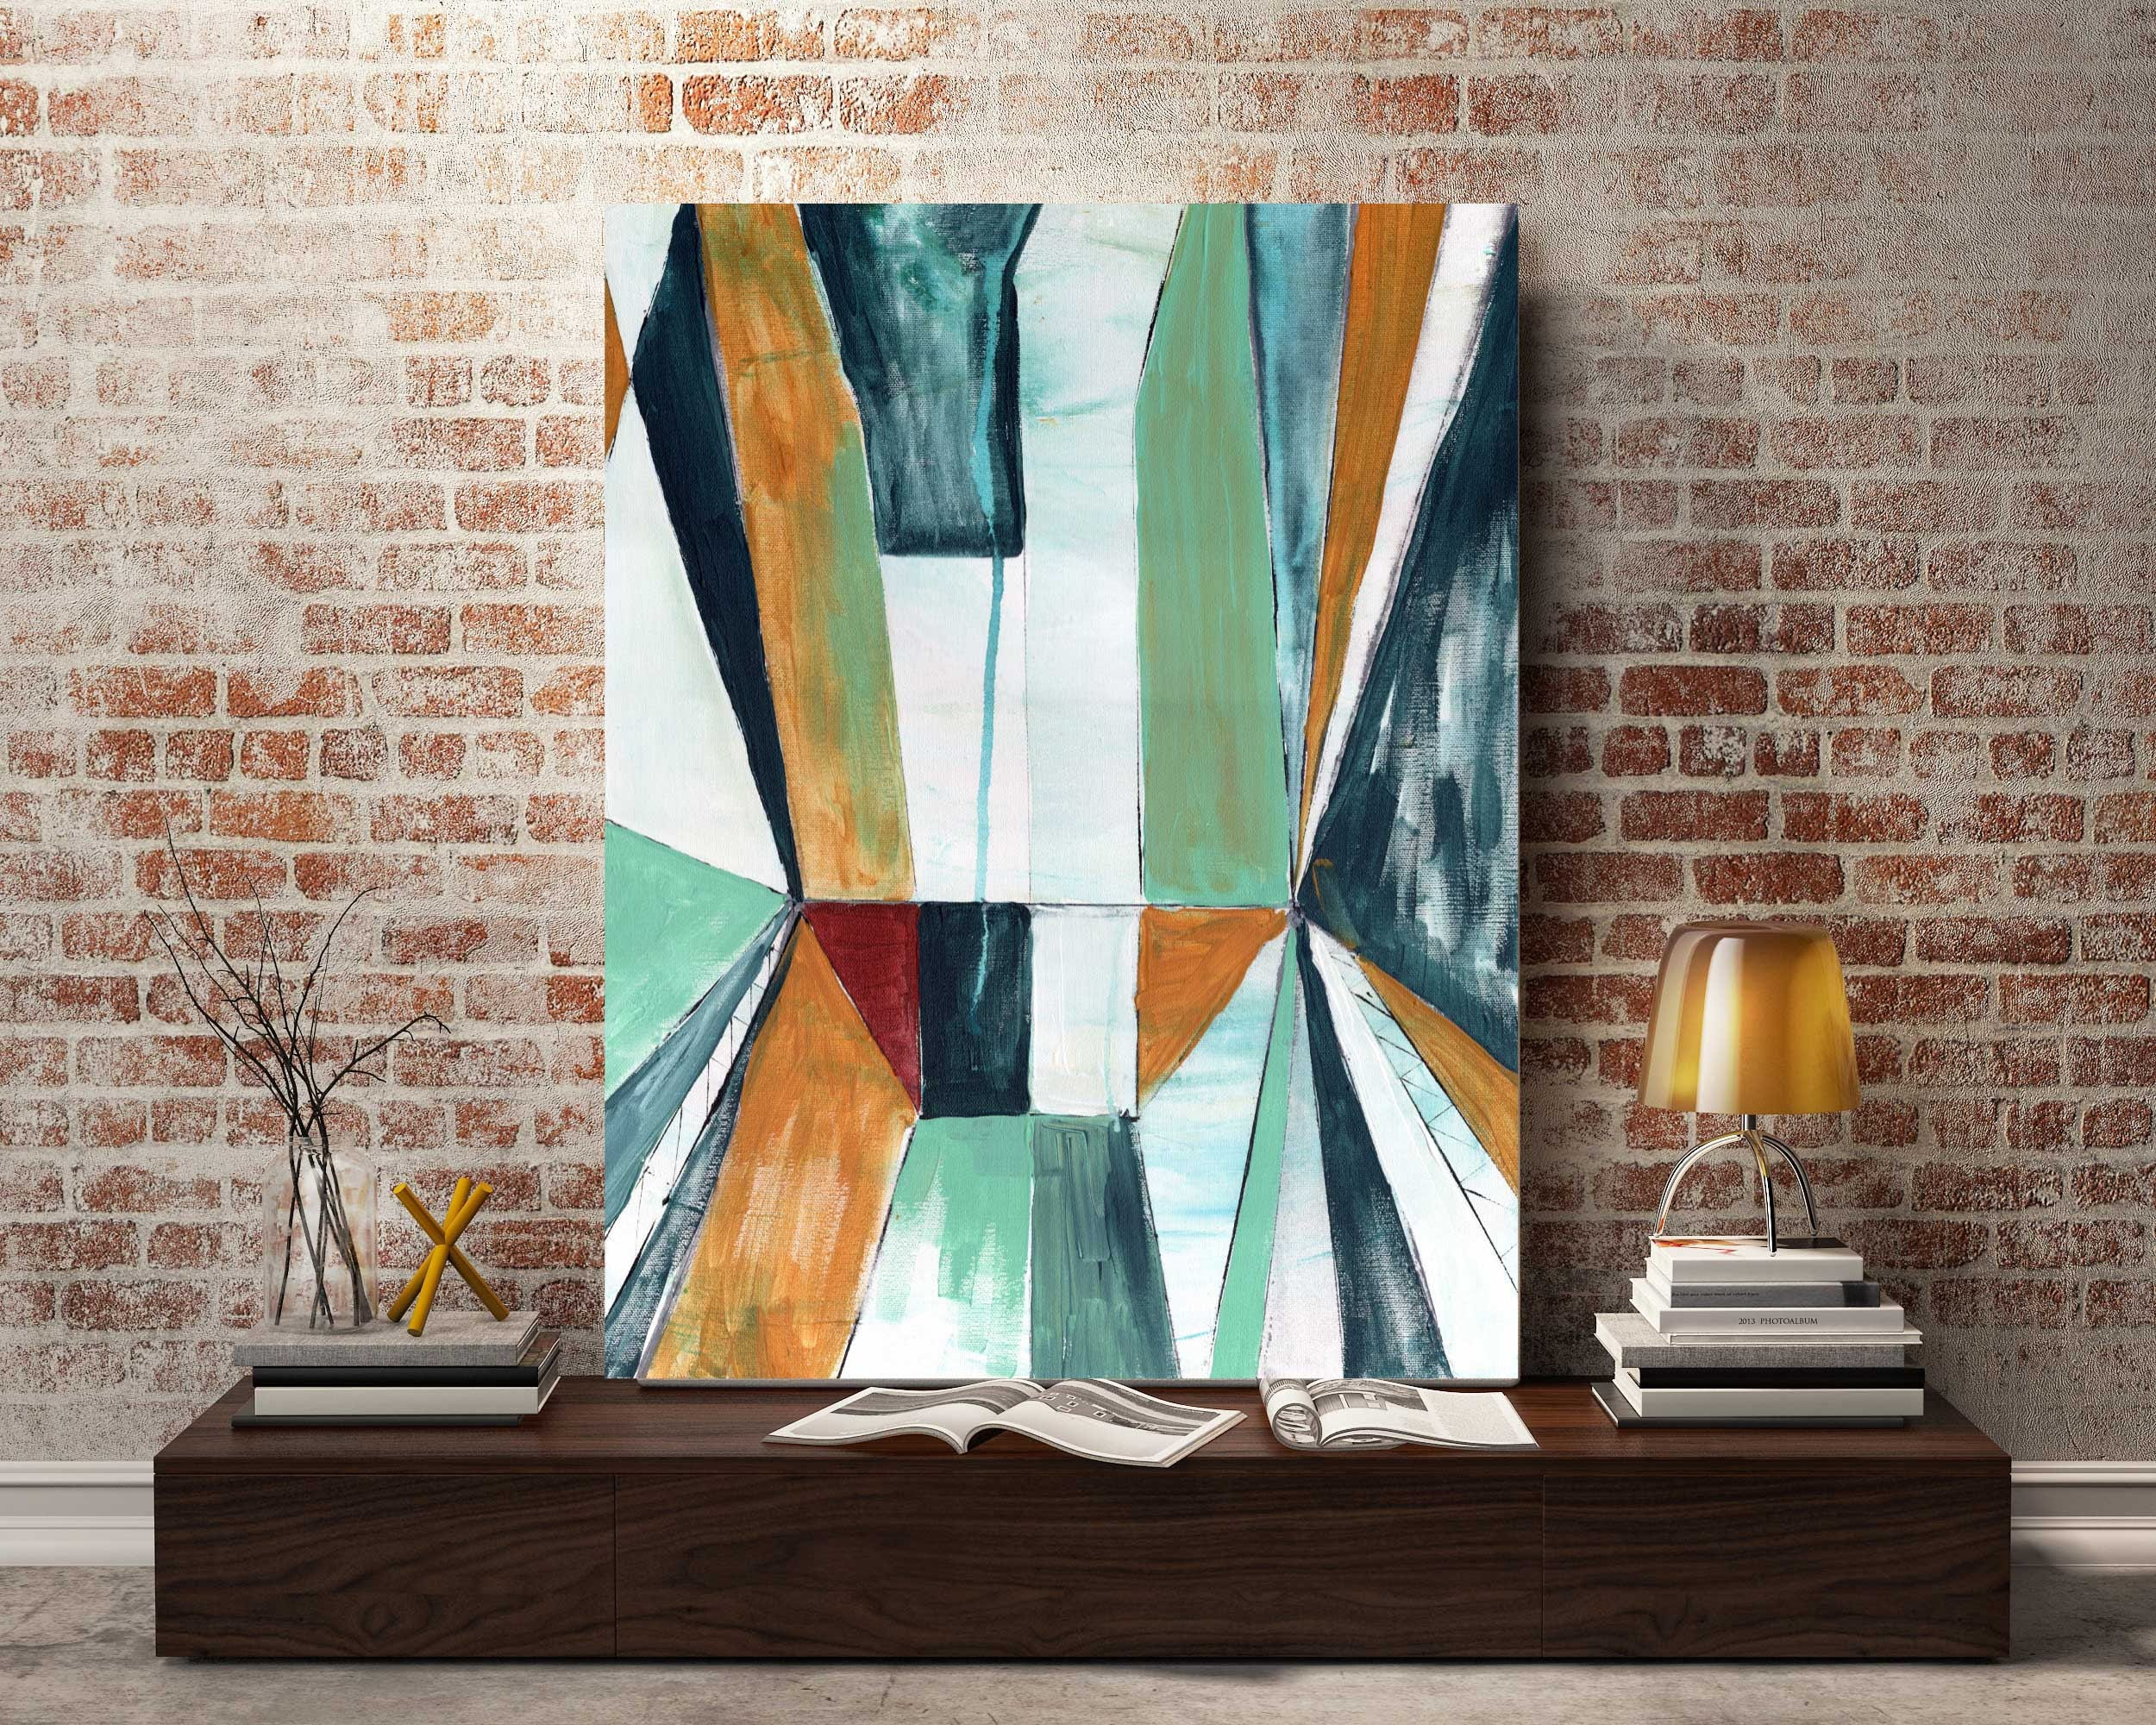 Original abstract painting linear block abstract art block painting interior decor modern art modern interior design interior wall art